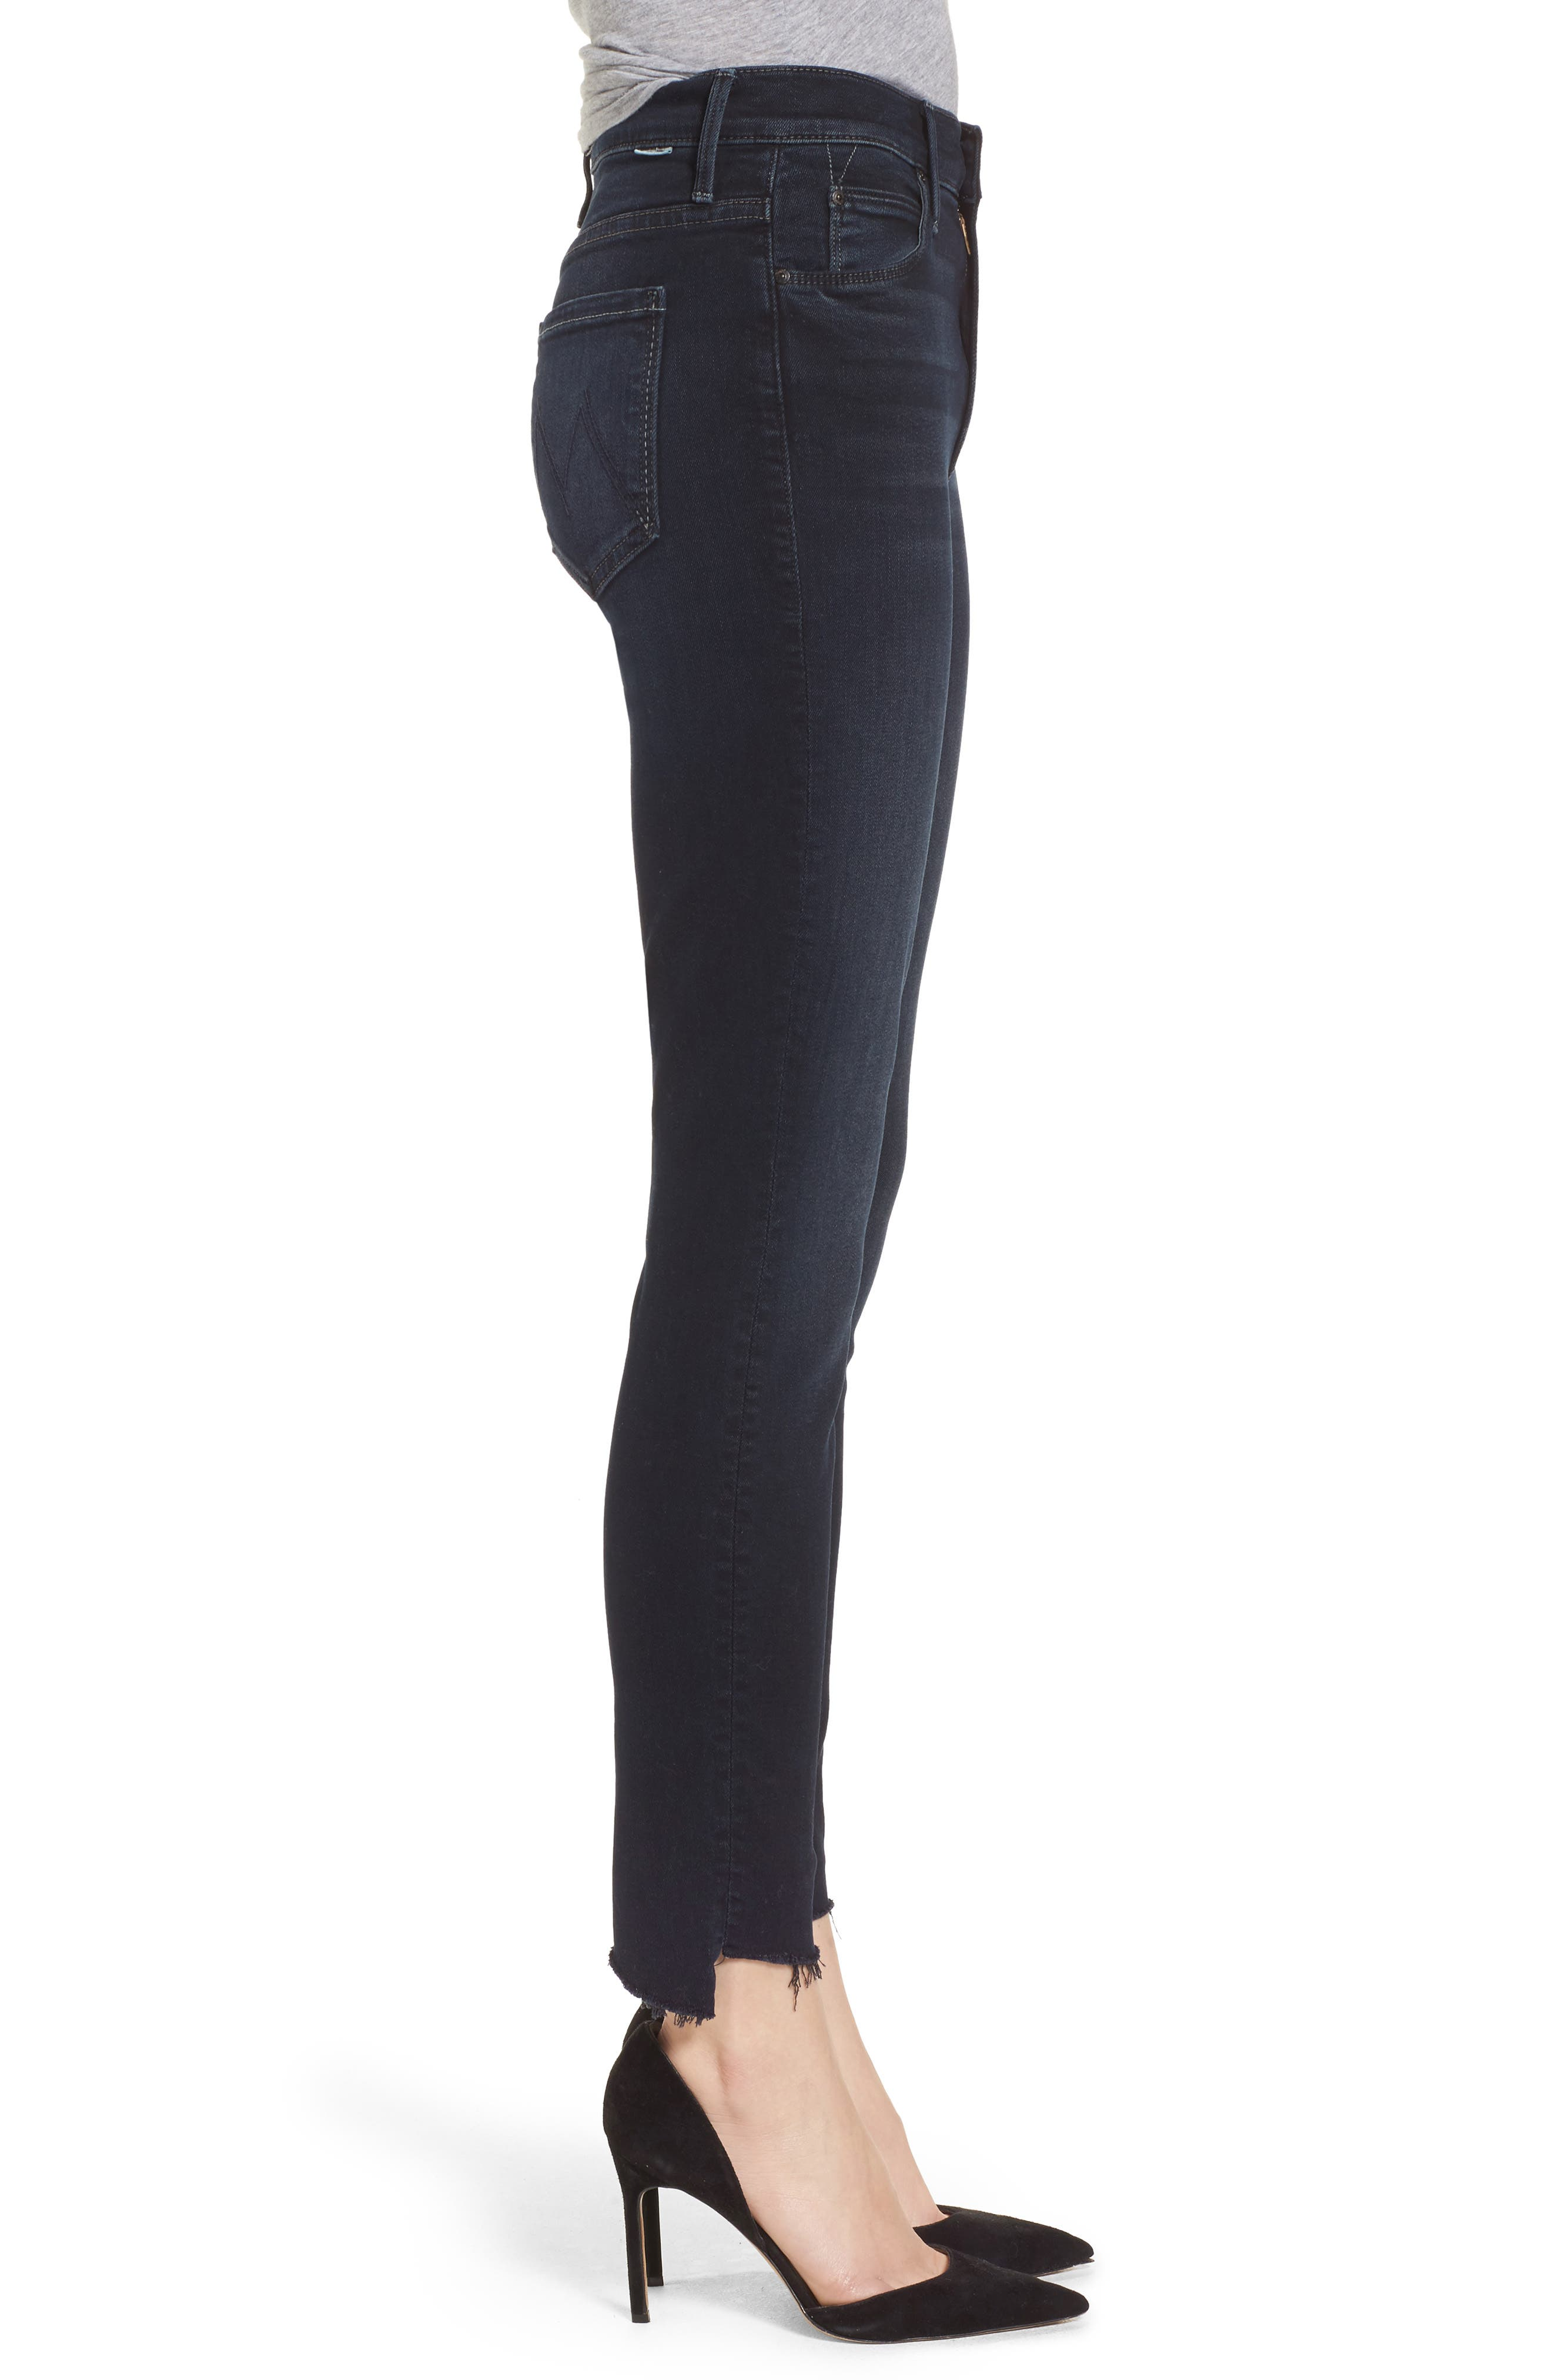 MOTHER, The Stunner High Waist Fray Ankle Skinny Jeans, Alternate thumbnail 4, color, LAST CALL